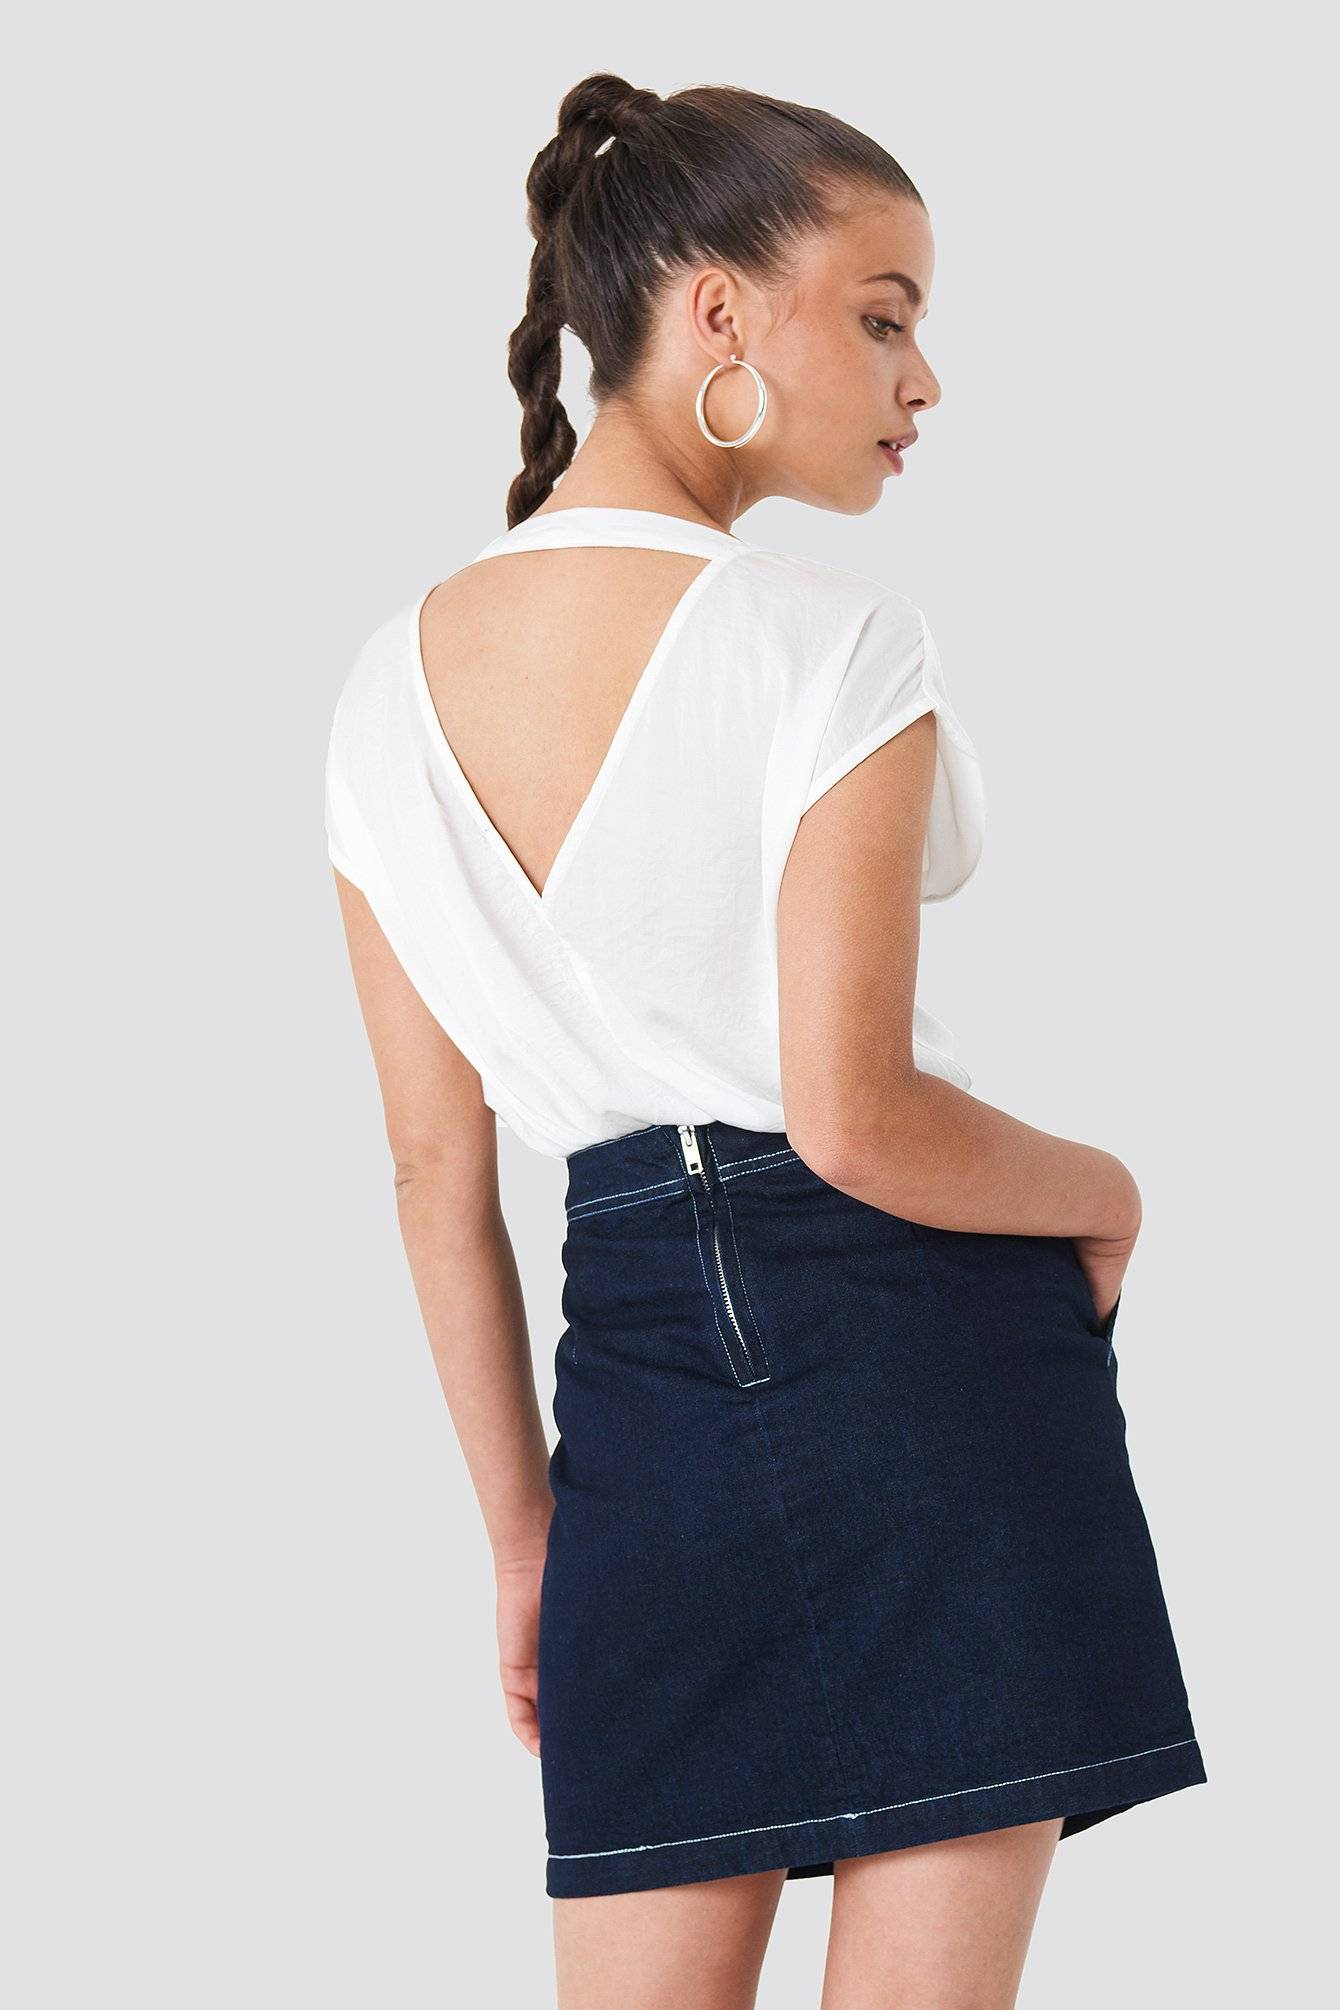 Rut&Circle Lucy Top - White